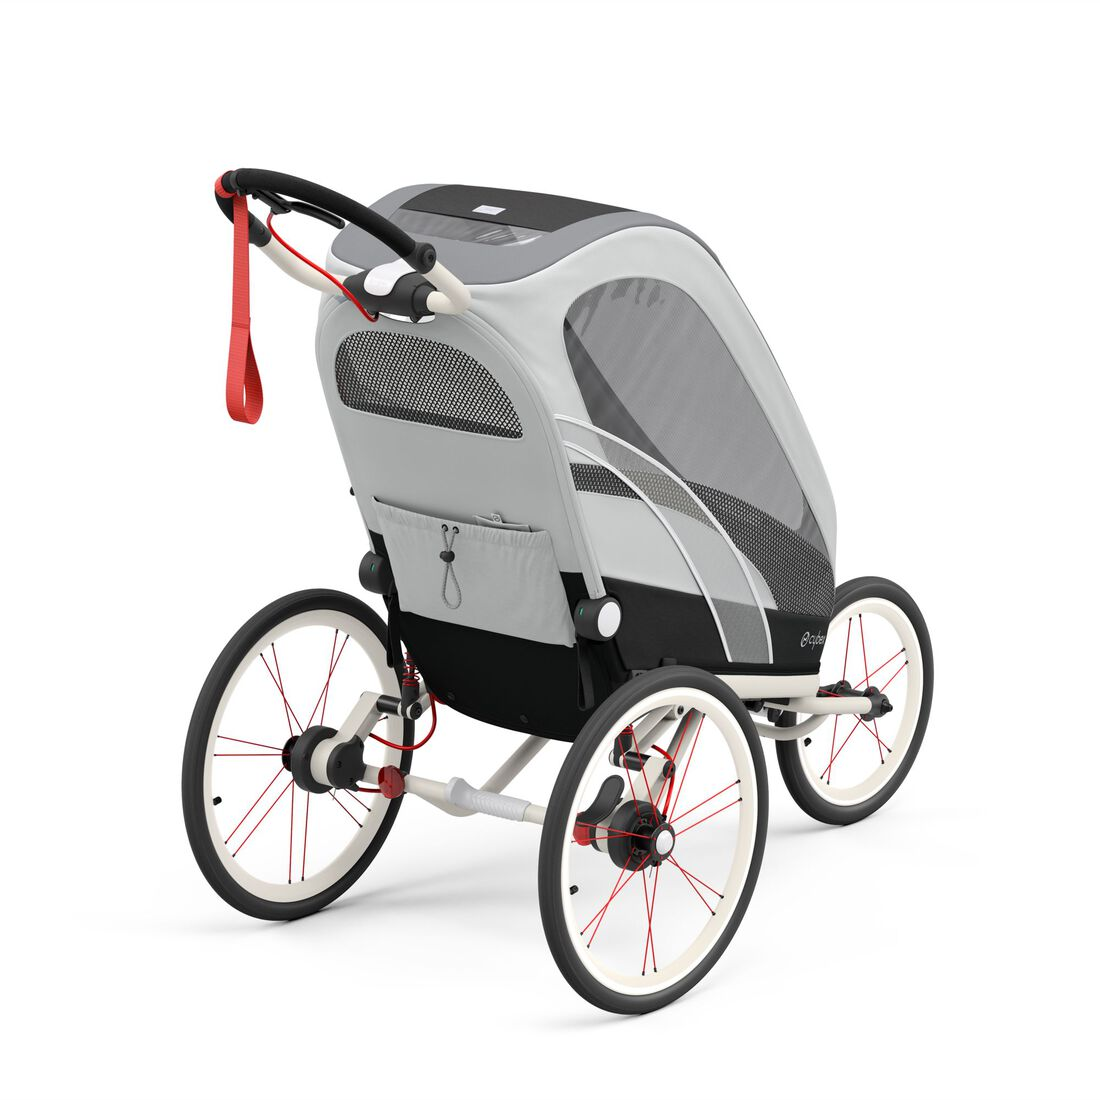 CYBEX Zeno Seat Pack - Medal Grey in Medal Grey large image number 5